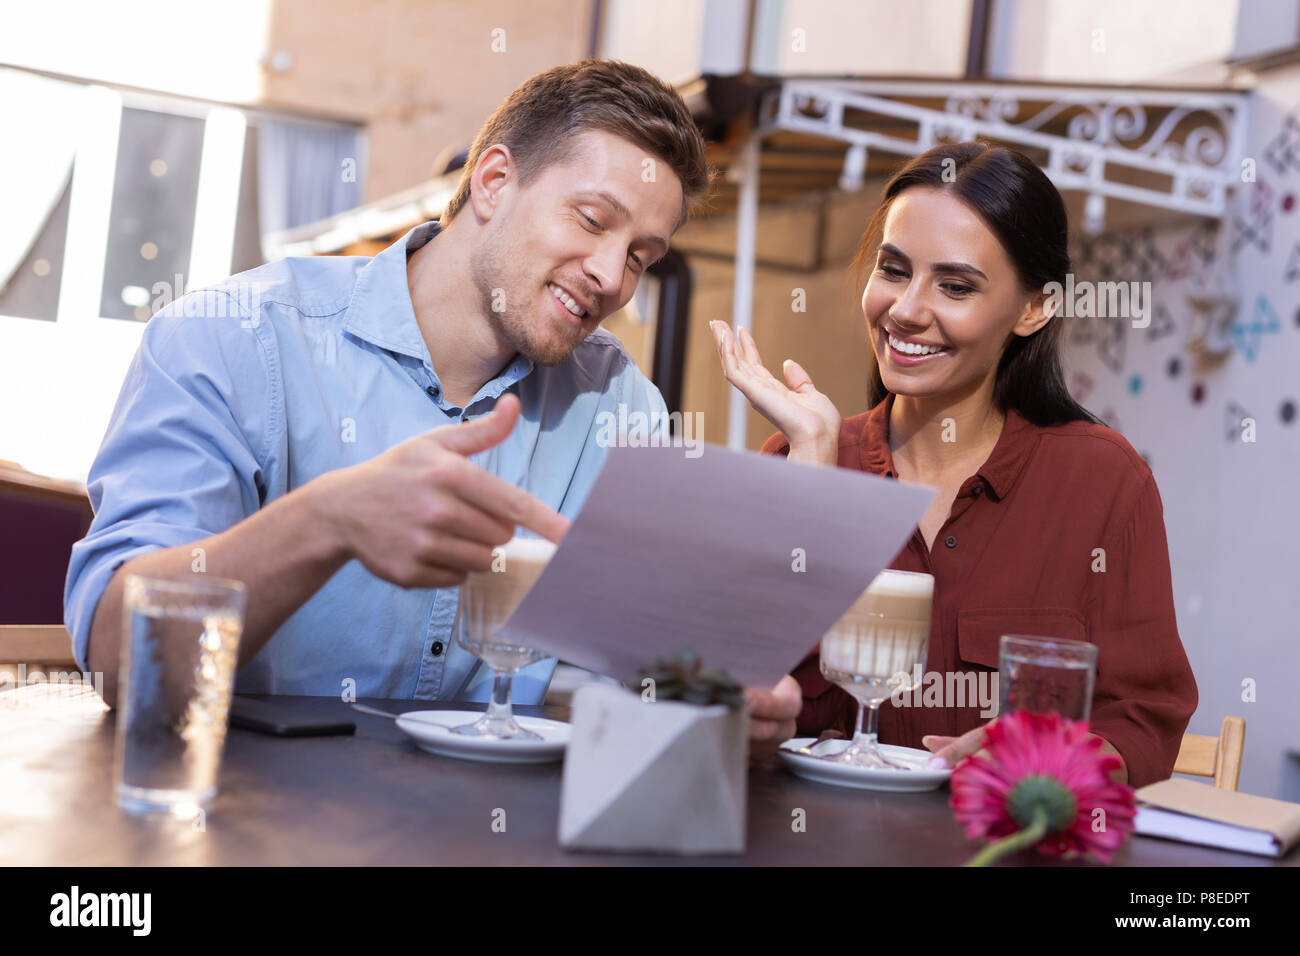 Two loving beaming personalities reading congratulation letter - Stock Image